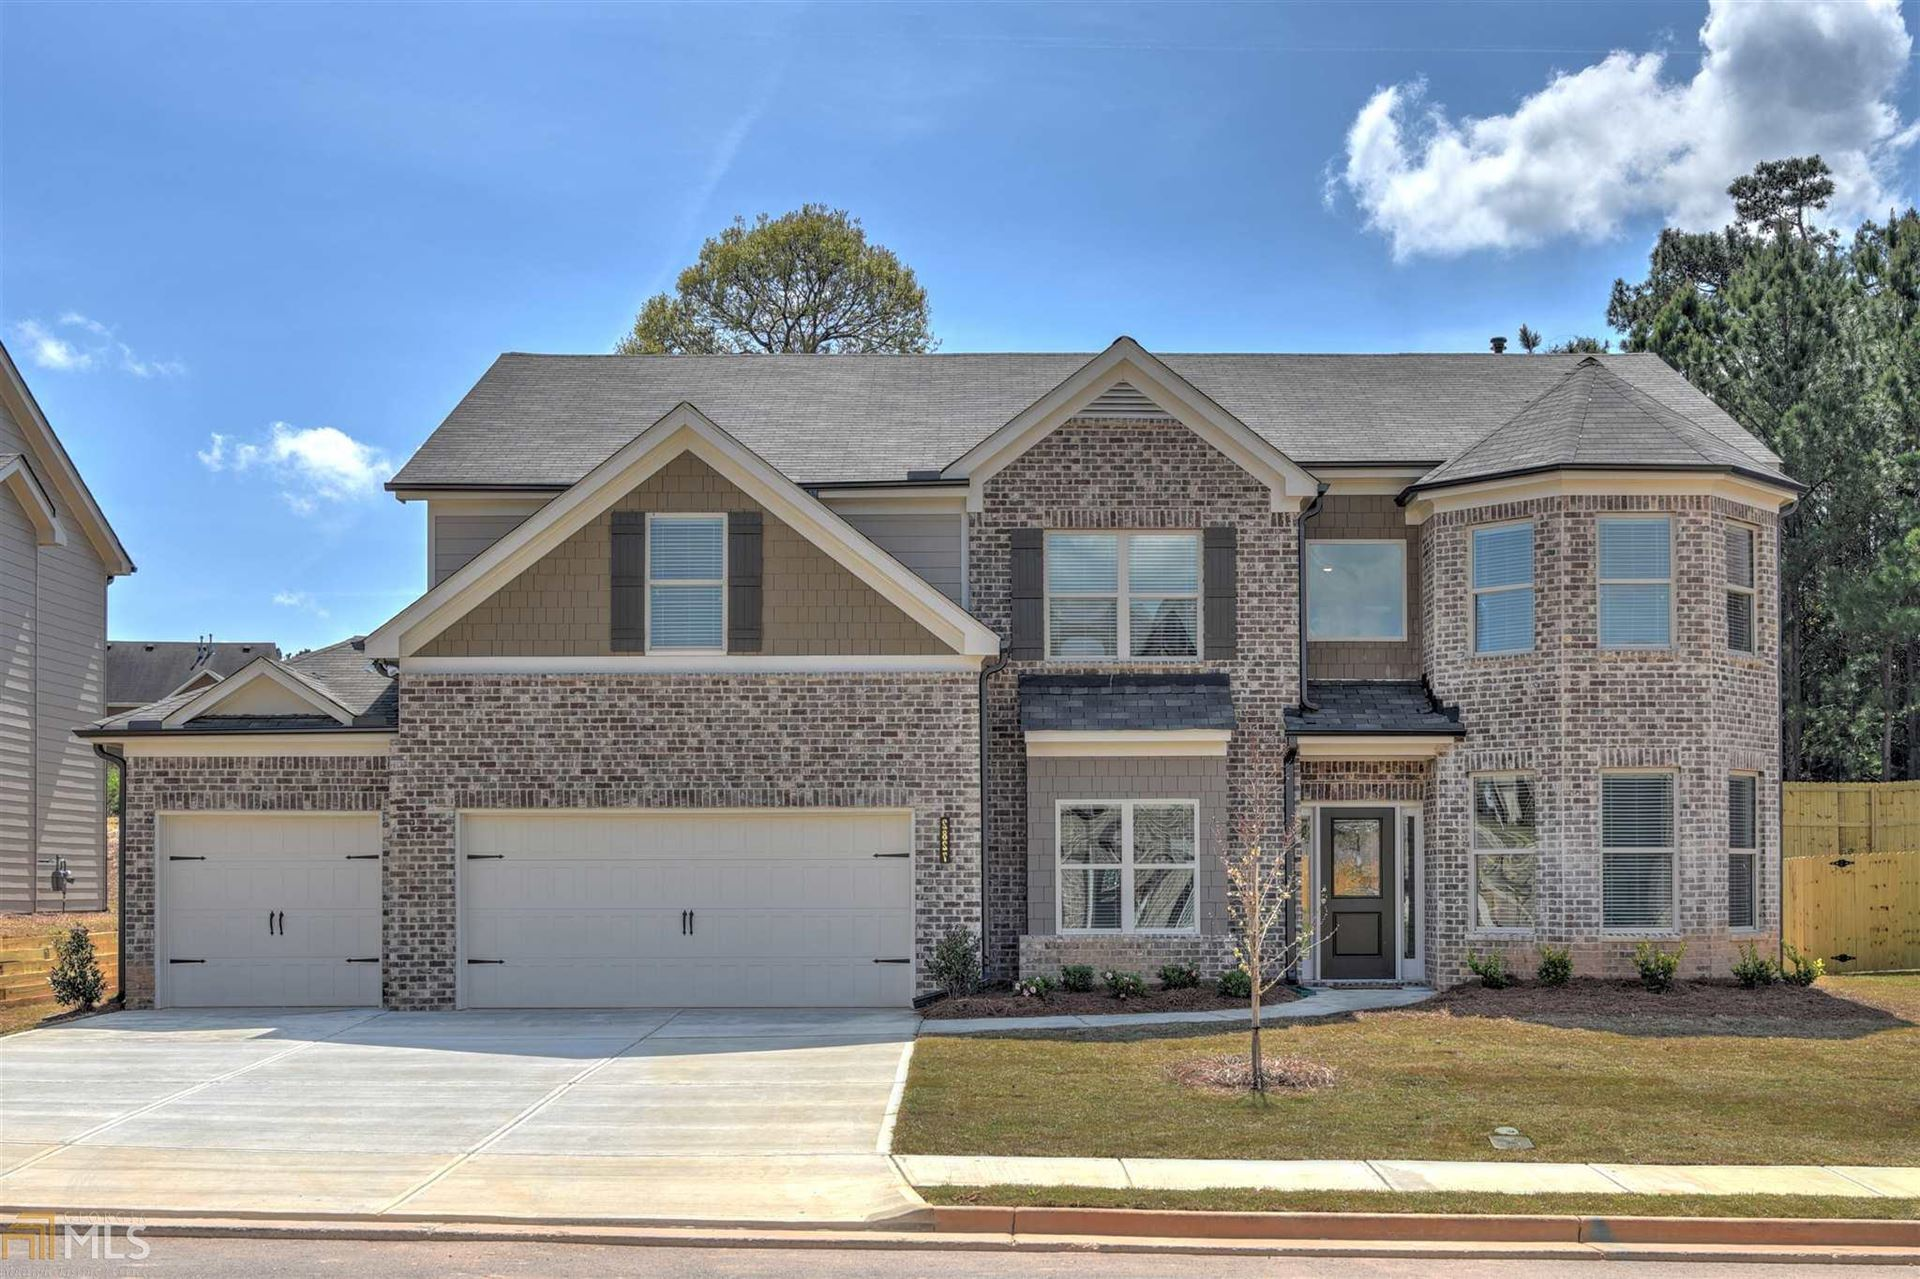 5946 Park Bay Ct, Flowery Branch, GA 30542 - #: 8860291